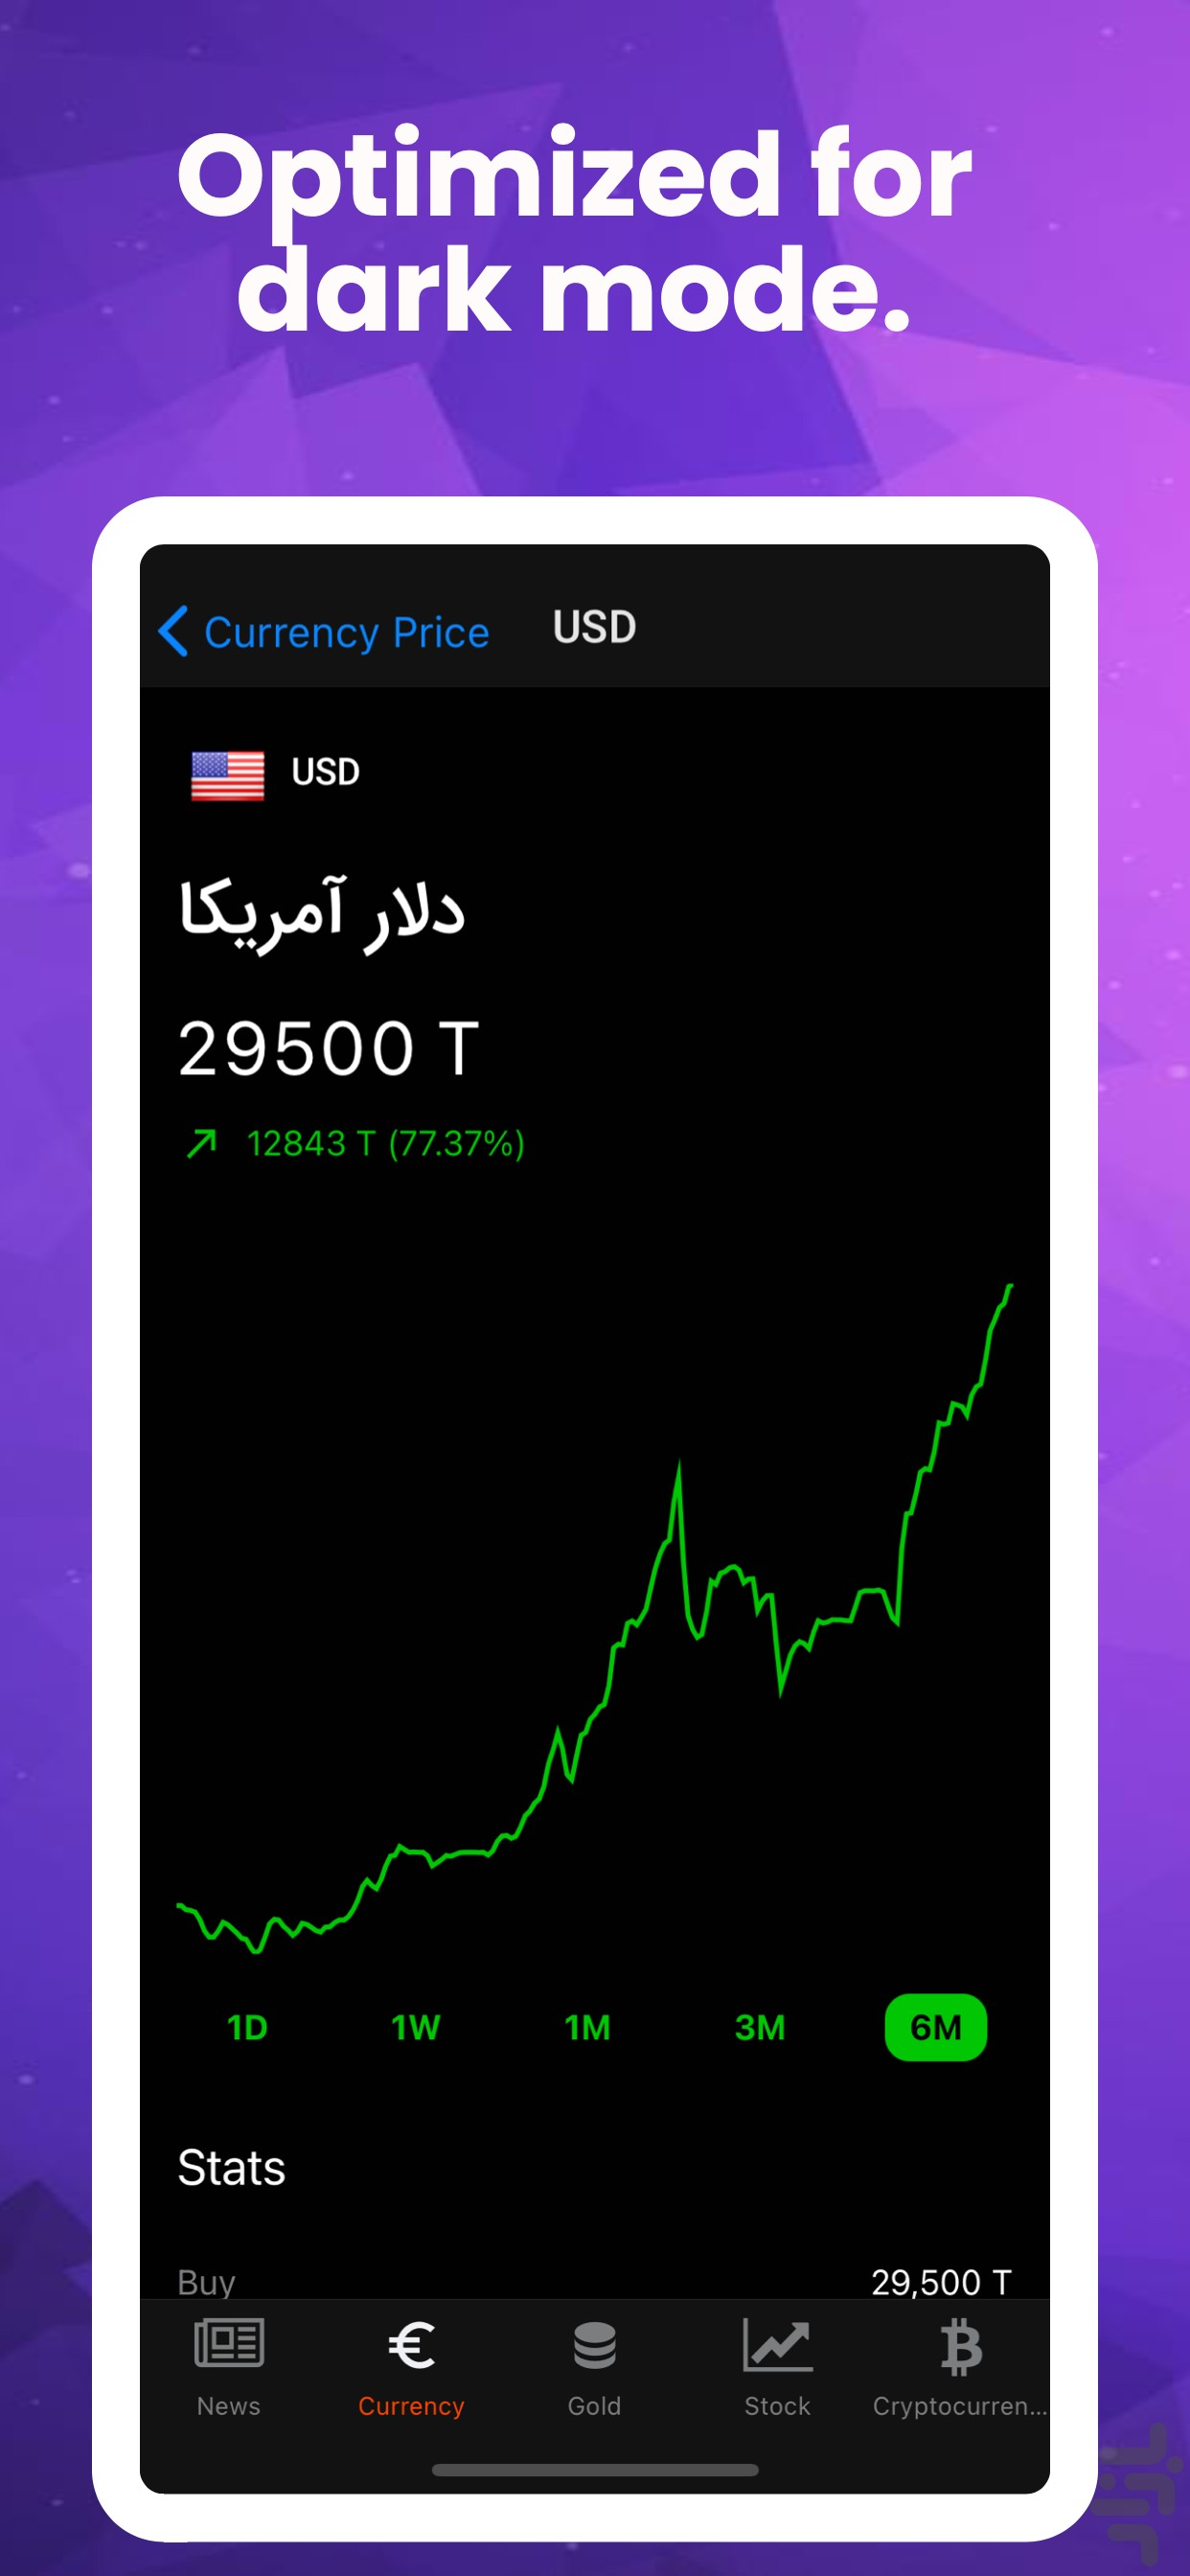 Mesghal مثقال For Android Download Cafe Bazaar Gold price, oil price, مثقال, قیمت طلا, mesghal, copper price, سایت مثقال. mesghal مثقال for android download cafe bazaar